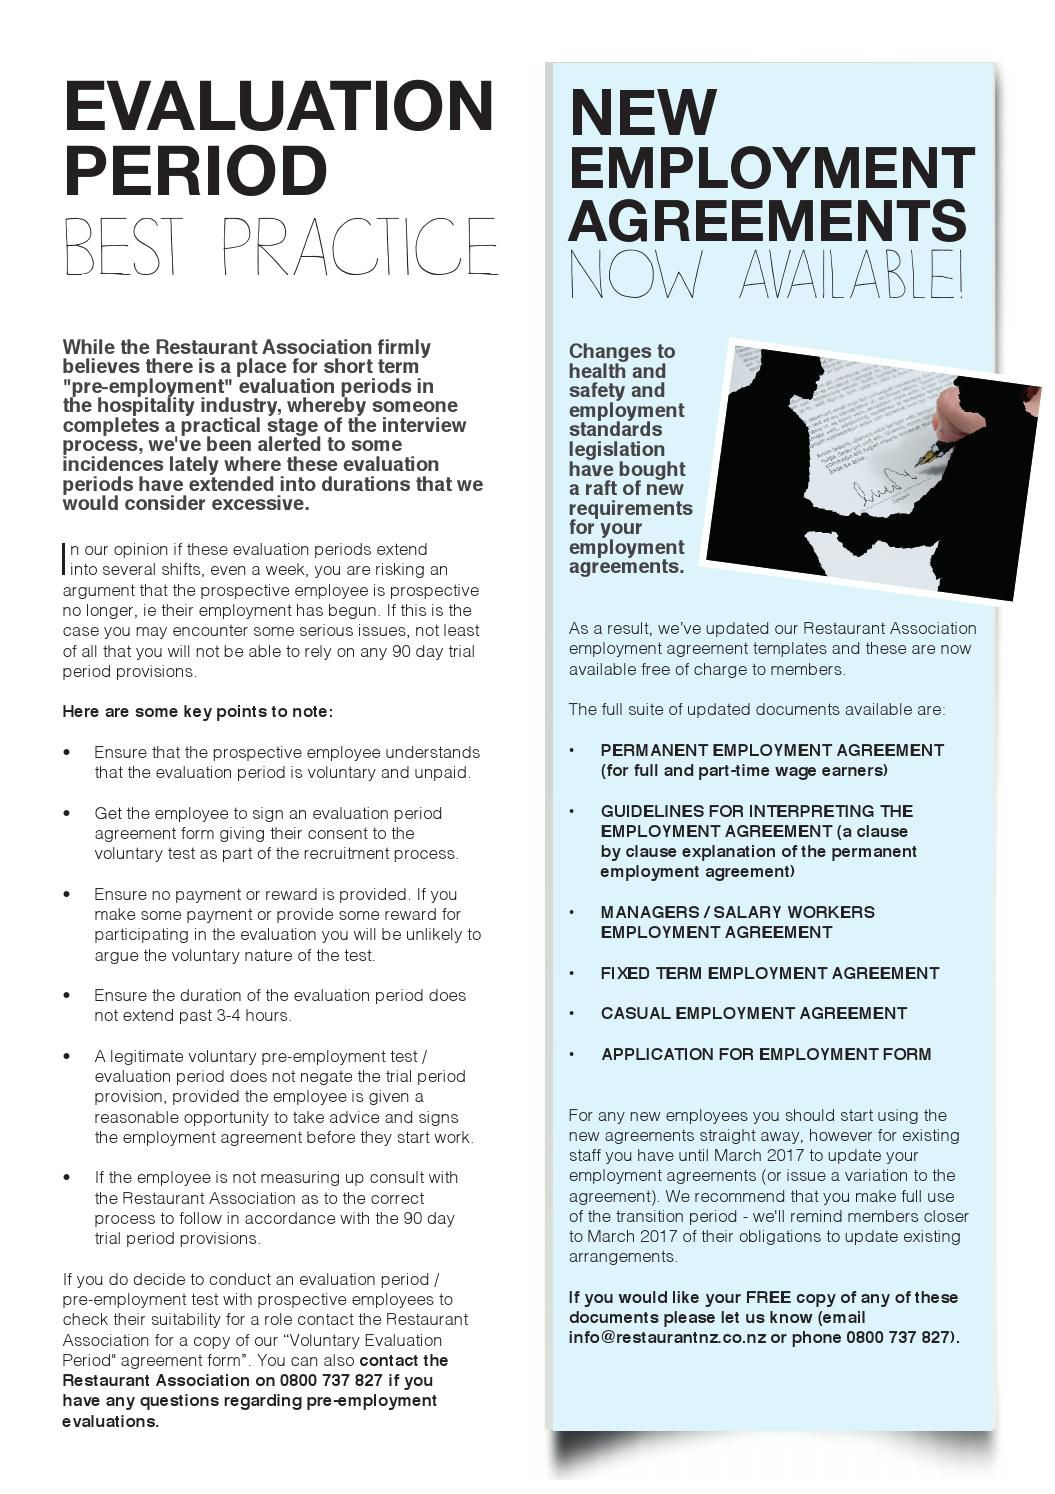 008 Archaicawful Free Casual Employment Contract Template Nz Design Full